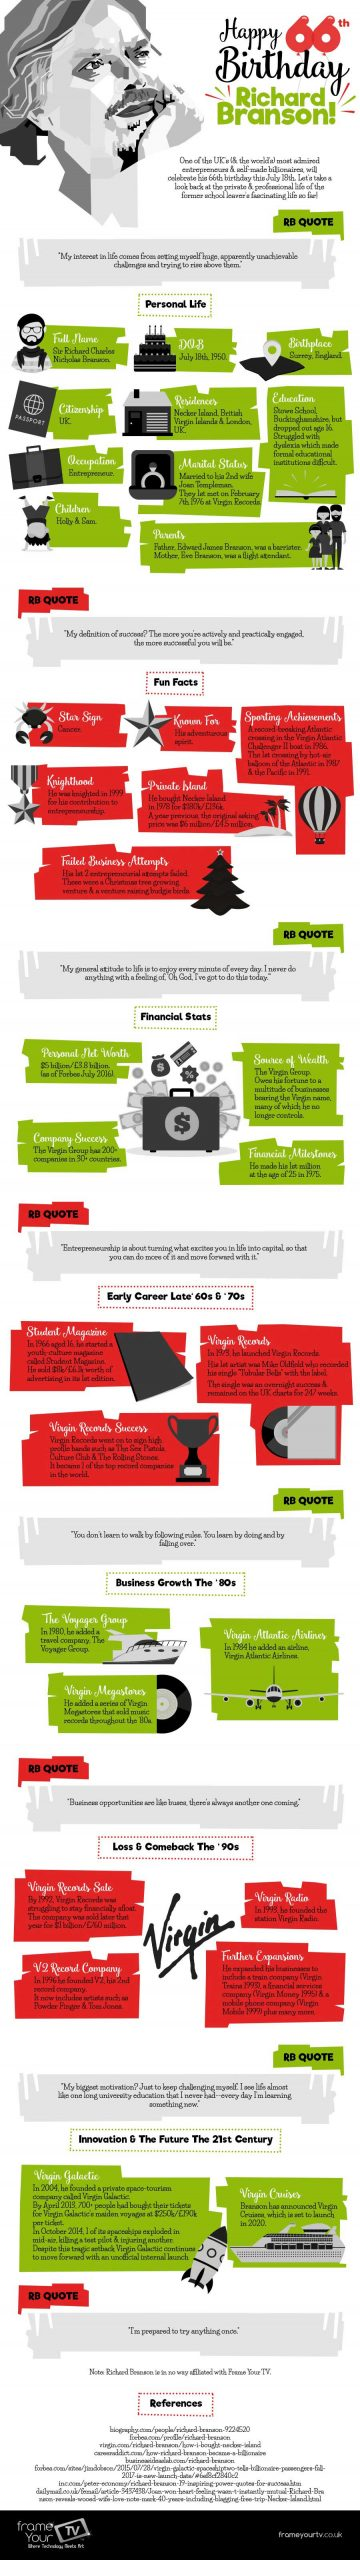 Happy-66th-Birthday-Richard-Branson!-infographic